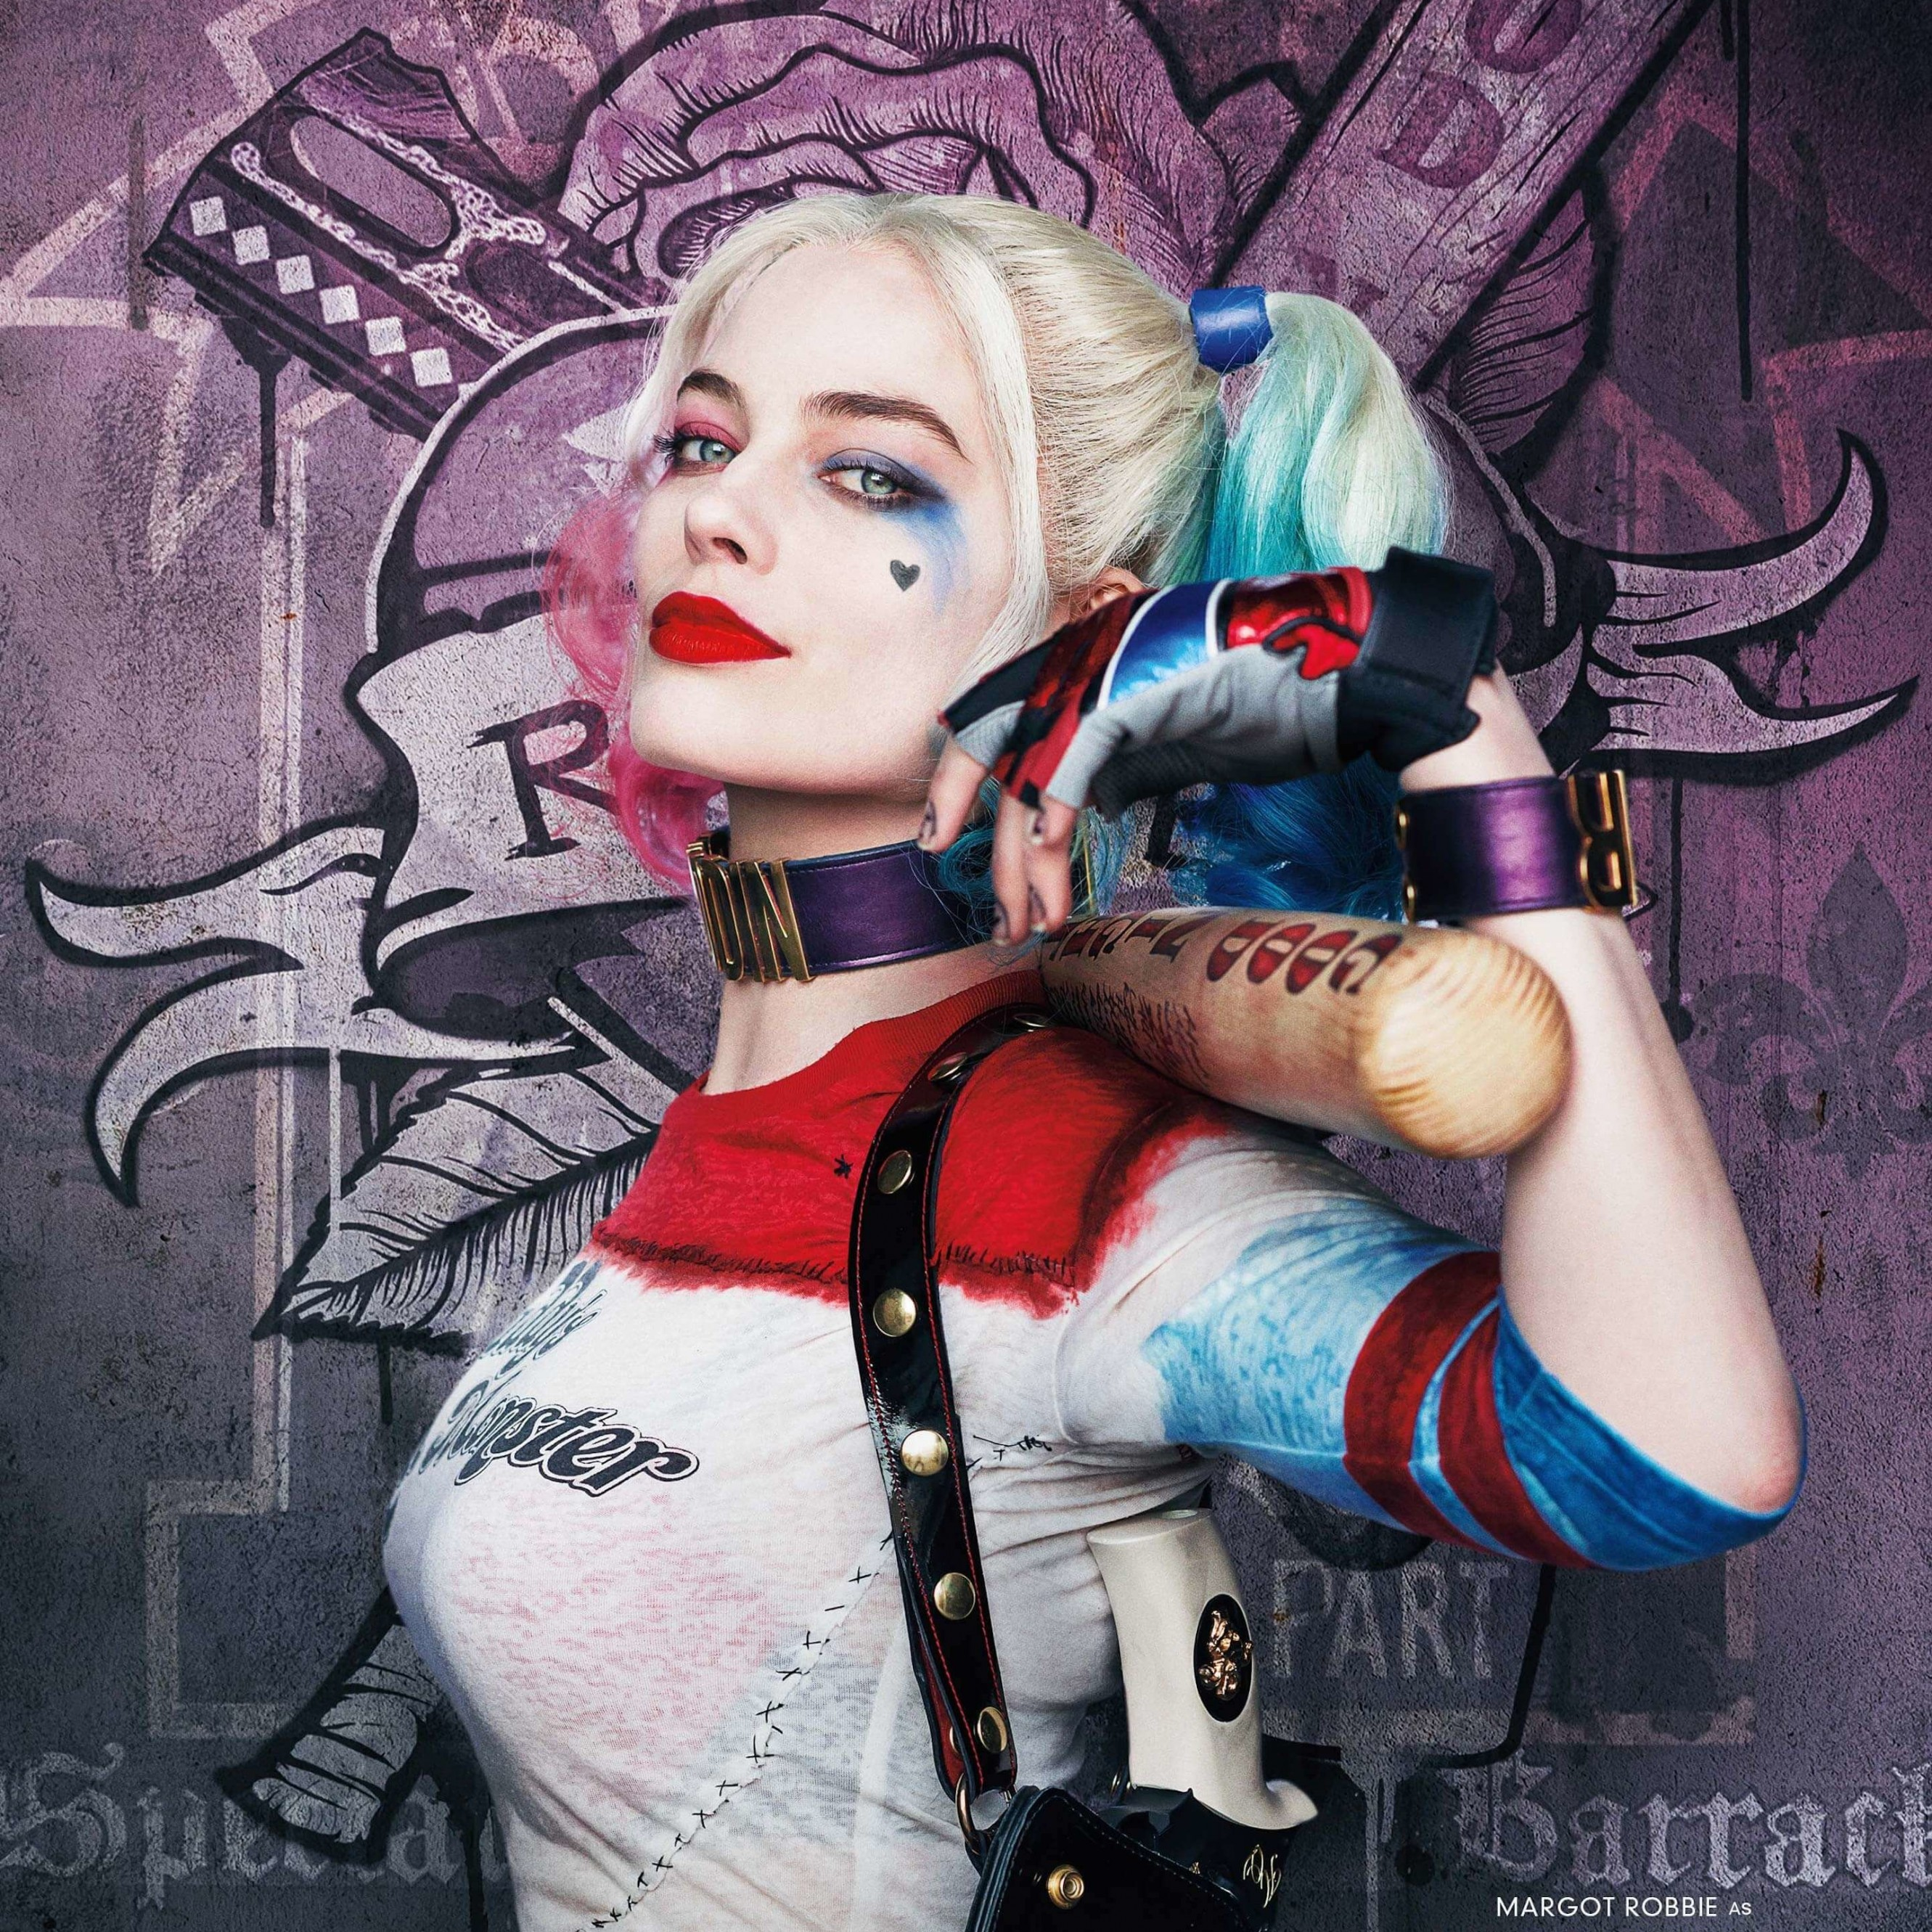 Harley Quinn - Suicide Squad Wallpaper for Apple iPhone 6 Plus